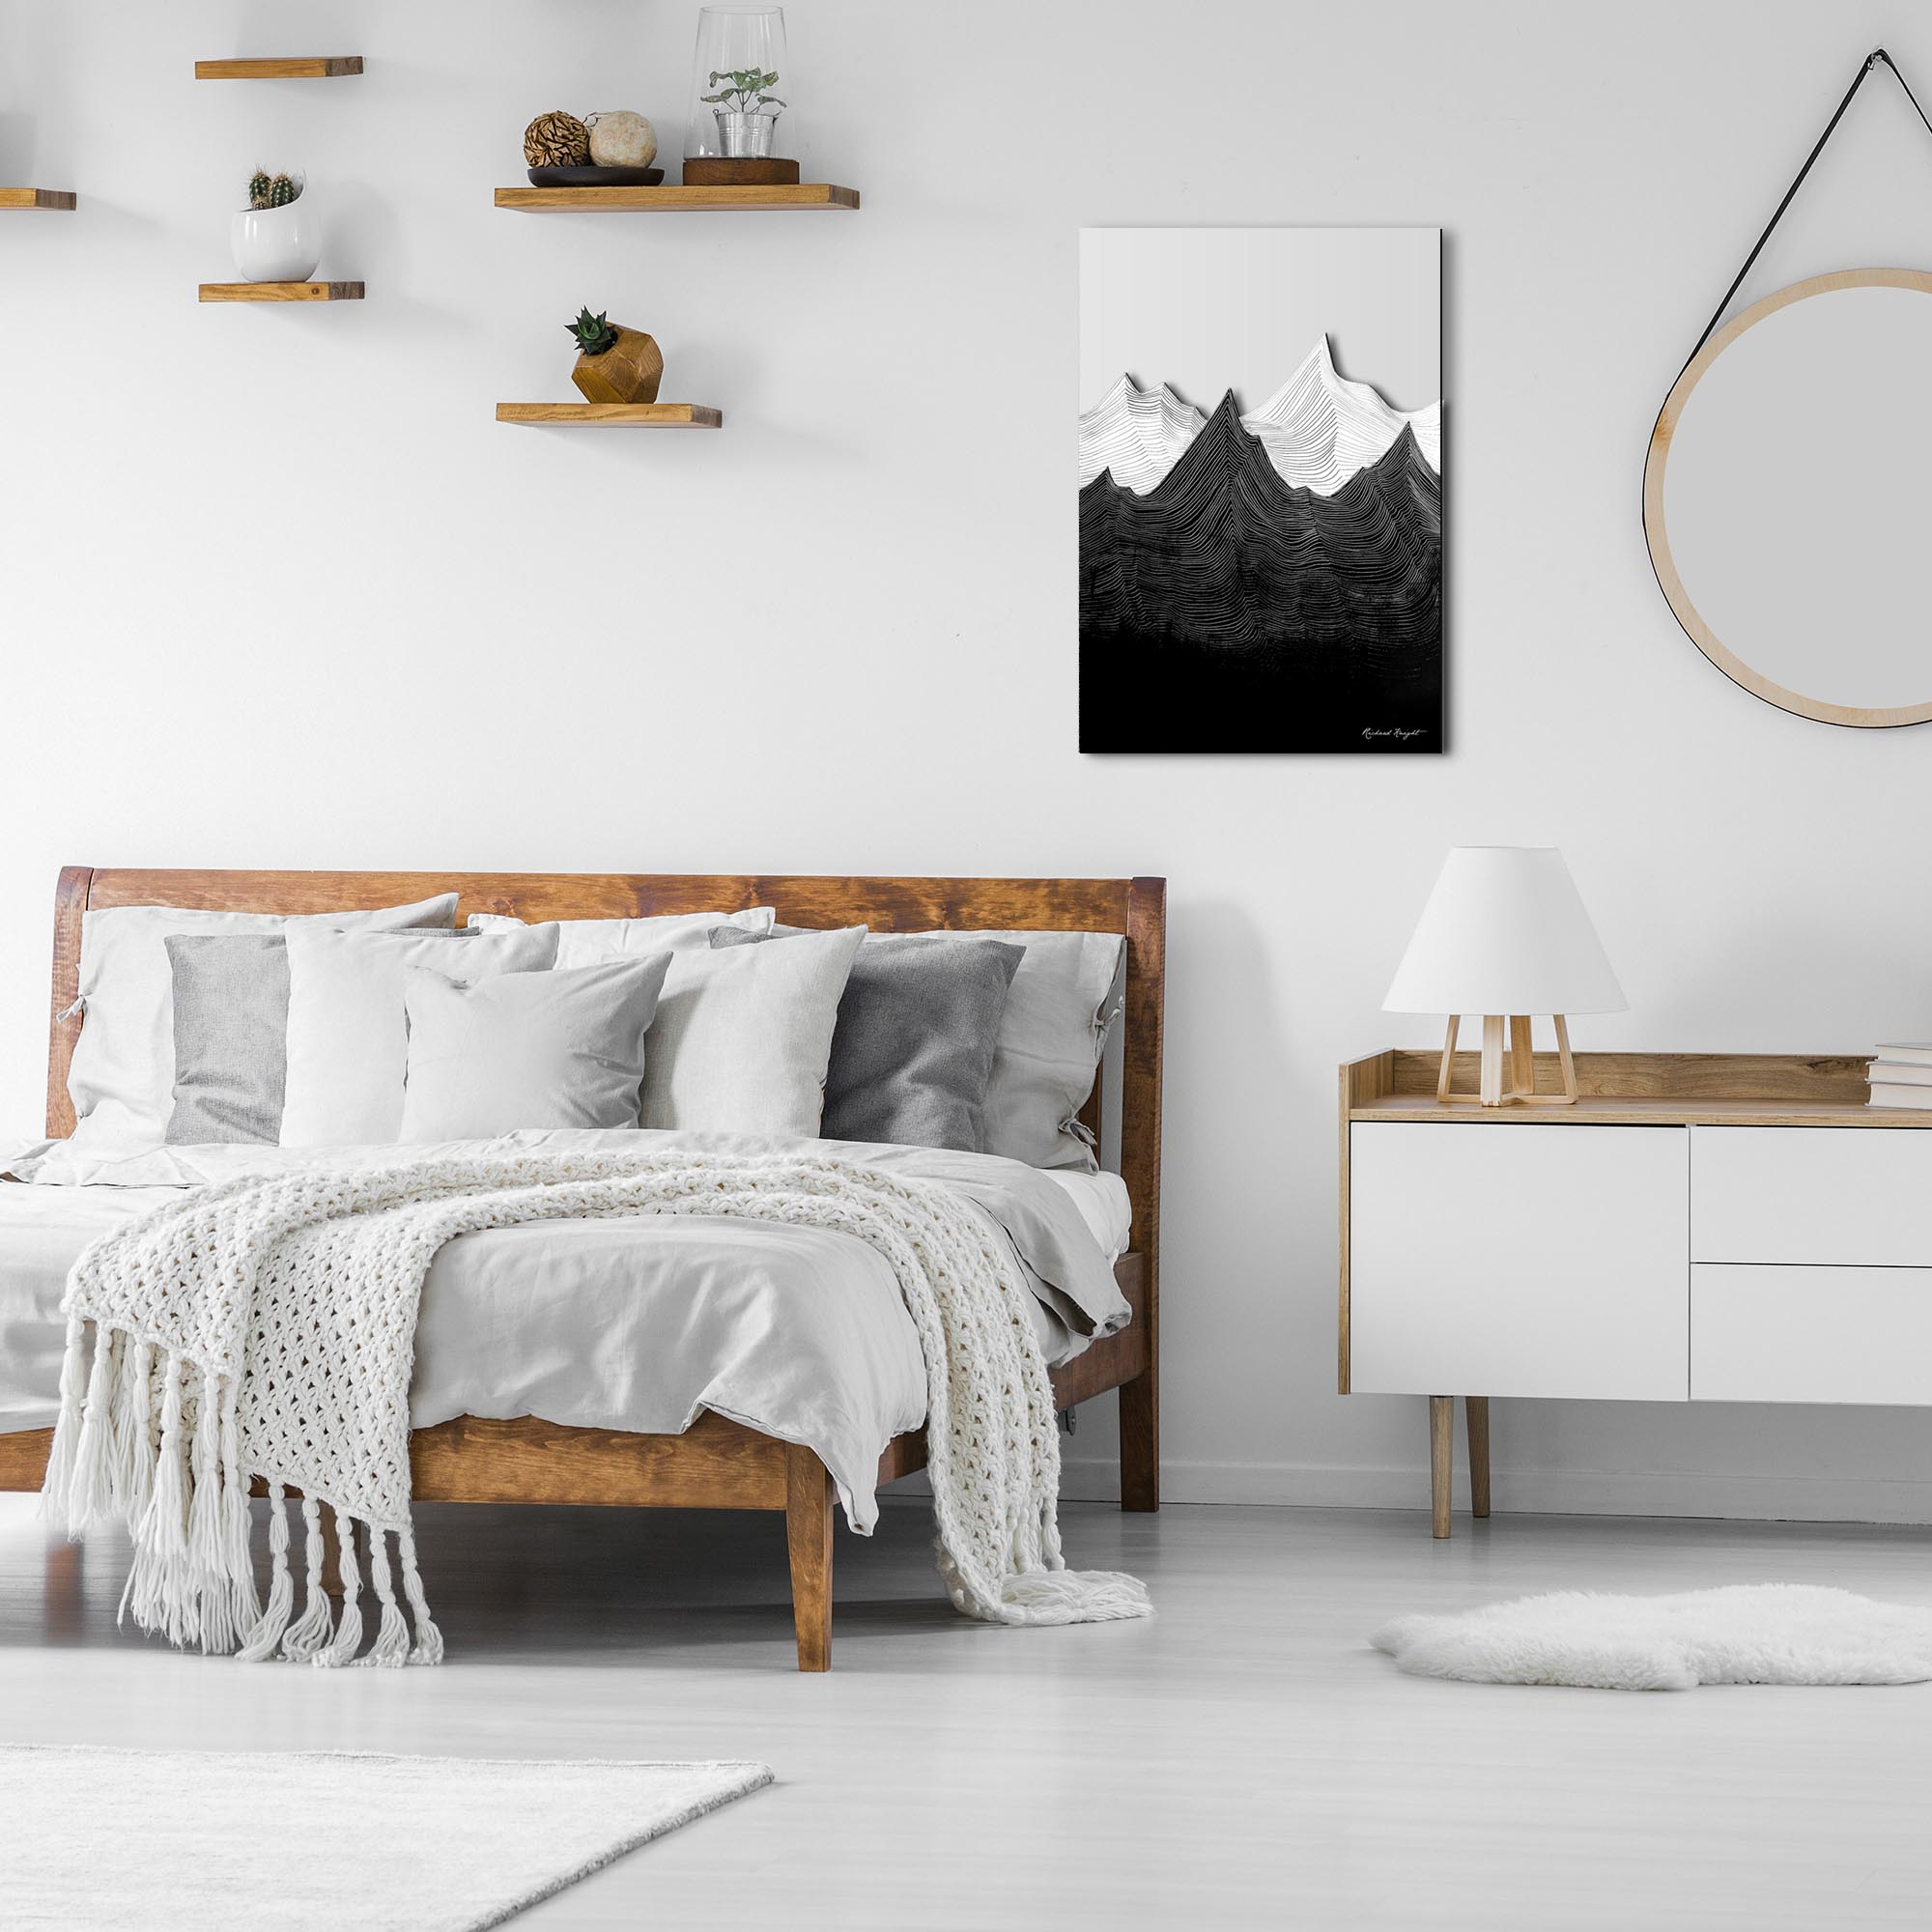 Shadow Mountains by Richard Knight - Ltd. Ed. Minimalist Abstract Landscape Art - Lifestyle View